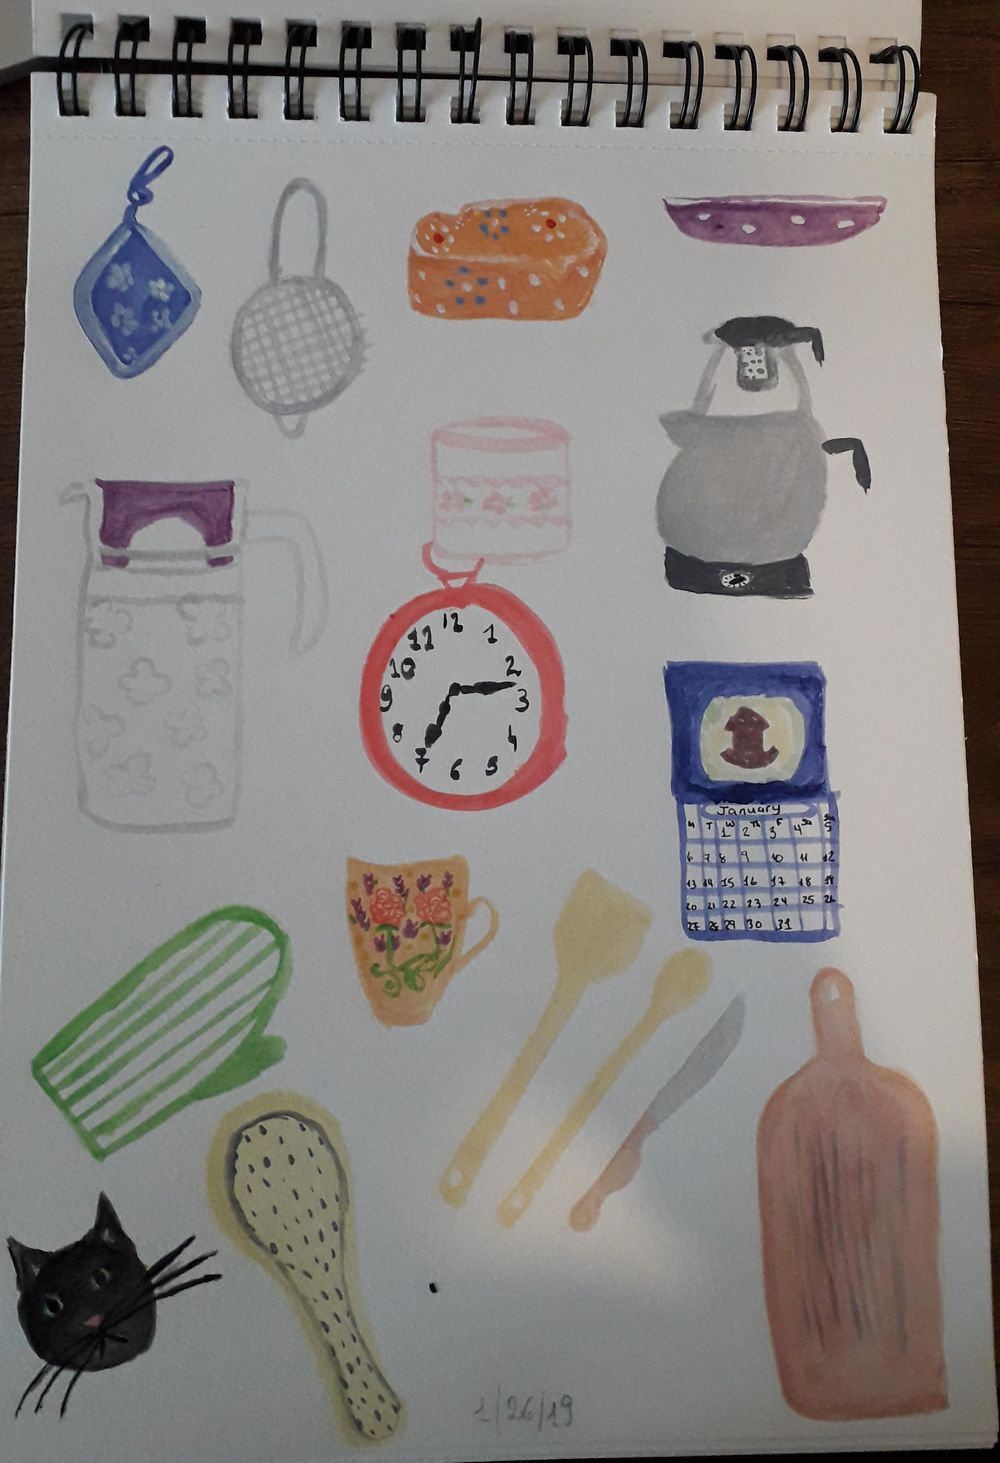 Teacups & Kitchen Items - image 1 - student project